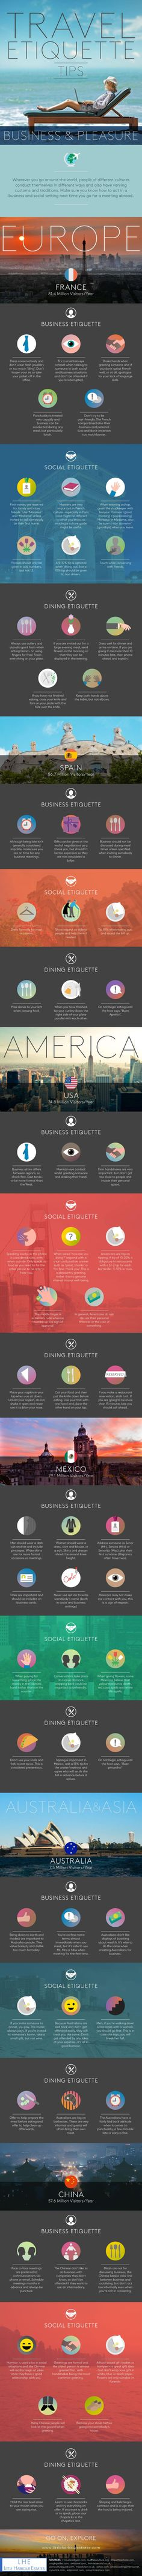 Travel Etiquette Tips #Infographic #Business #Travel